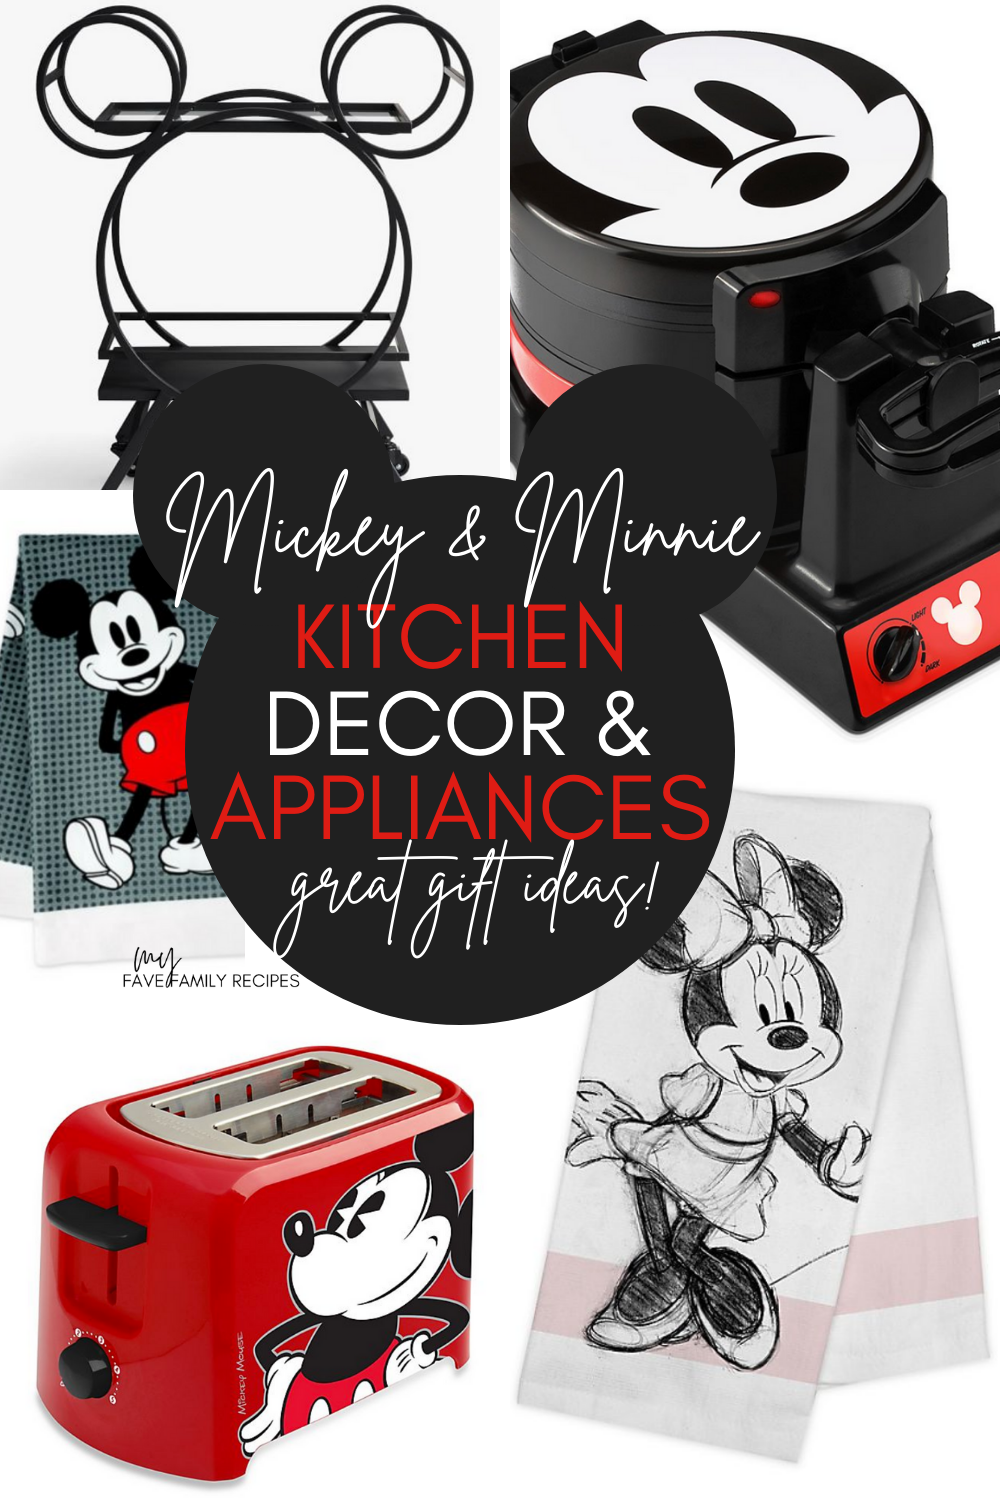 Disney® Mickey and Minnie Kitchen Decor - Towels, Appliances, Dishes - Great Gift Ideas!